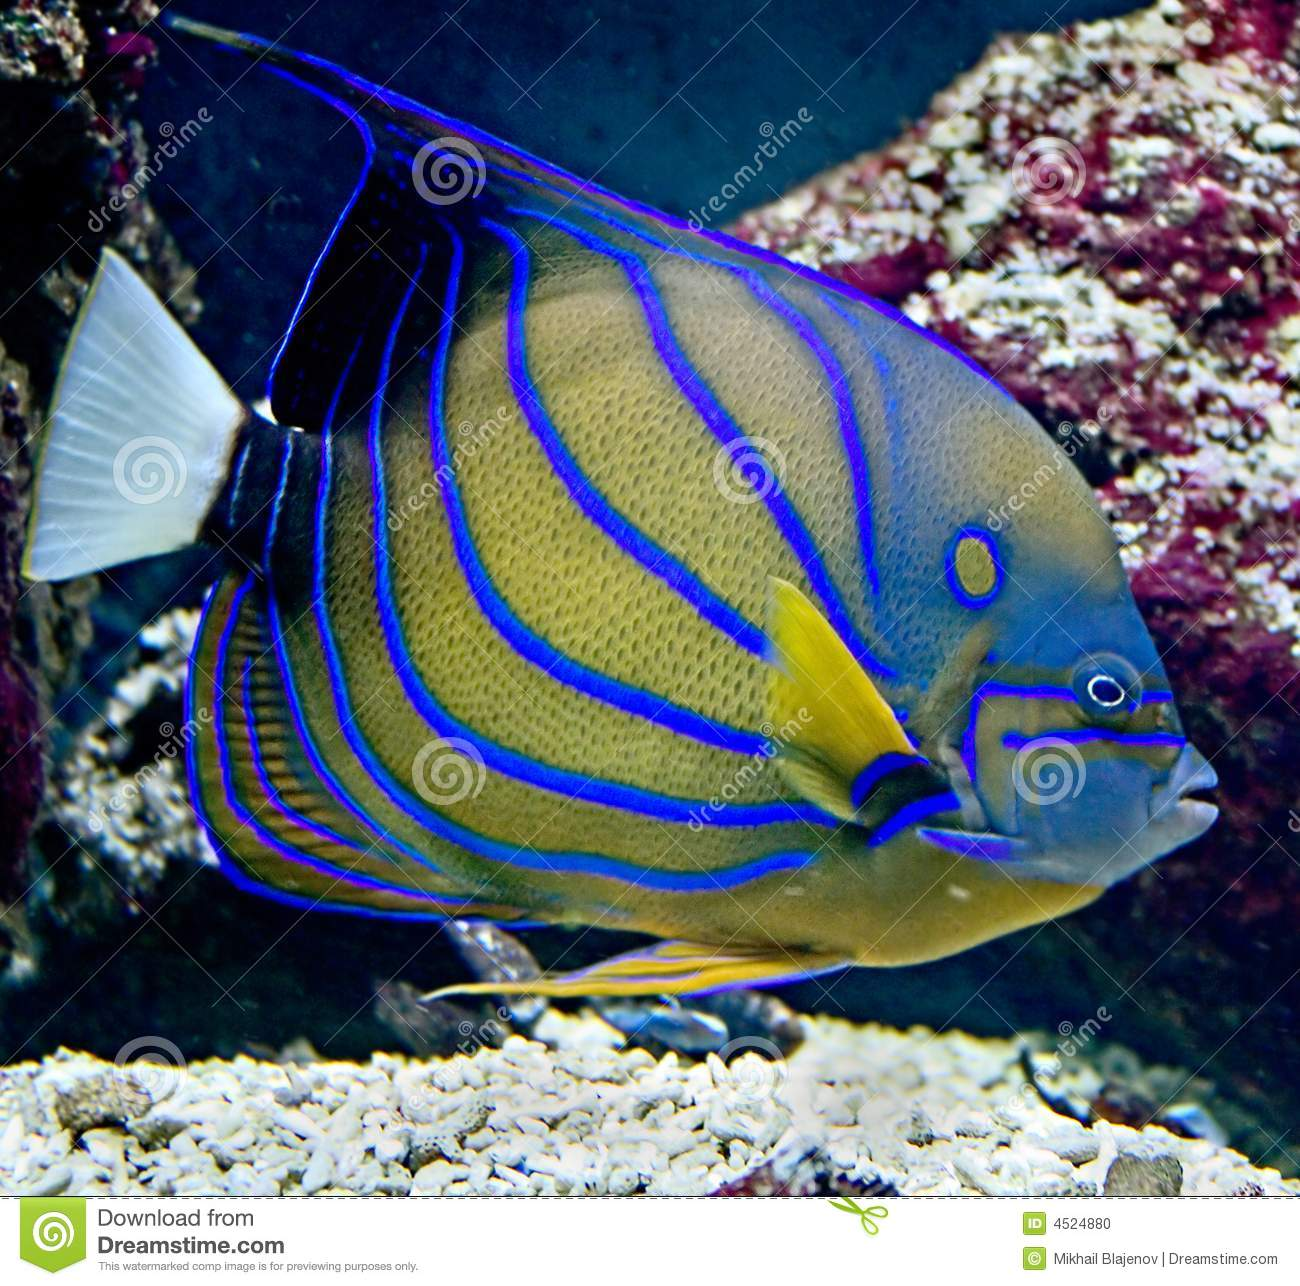 Poissons tropicaux 23 photo stock image 4524880 for Poisson tropicaux